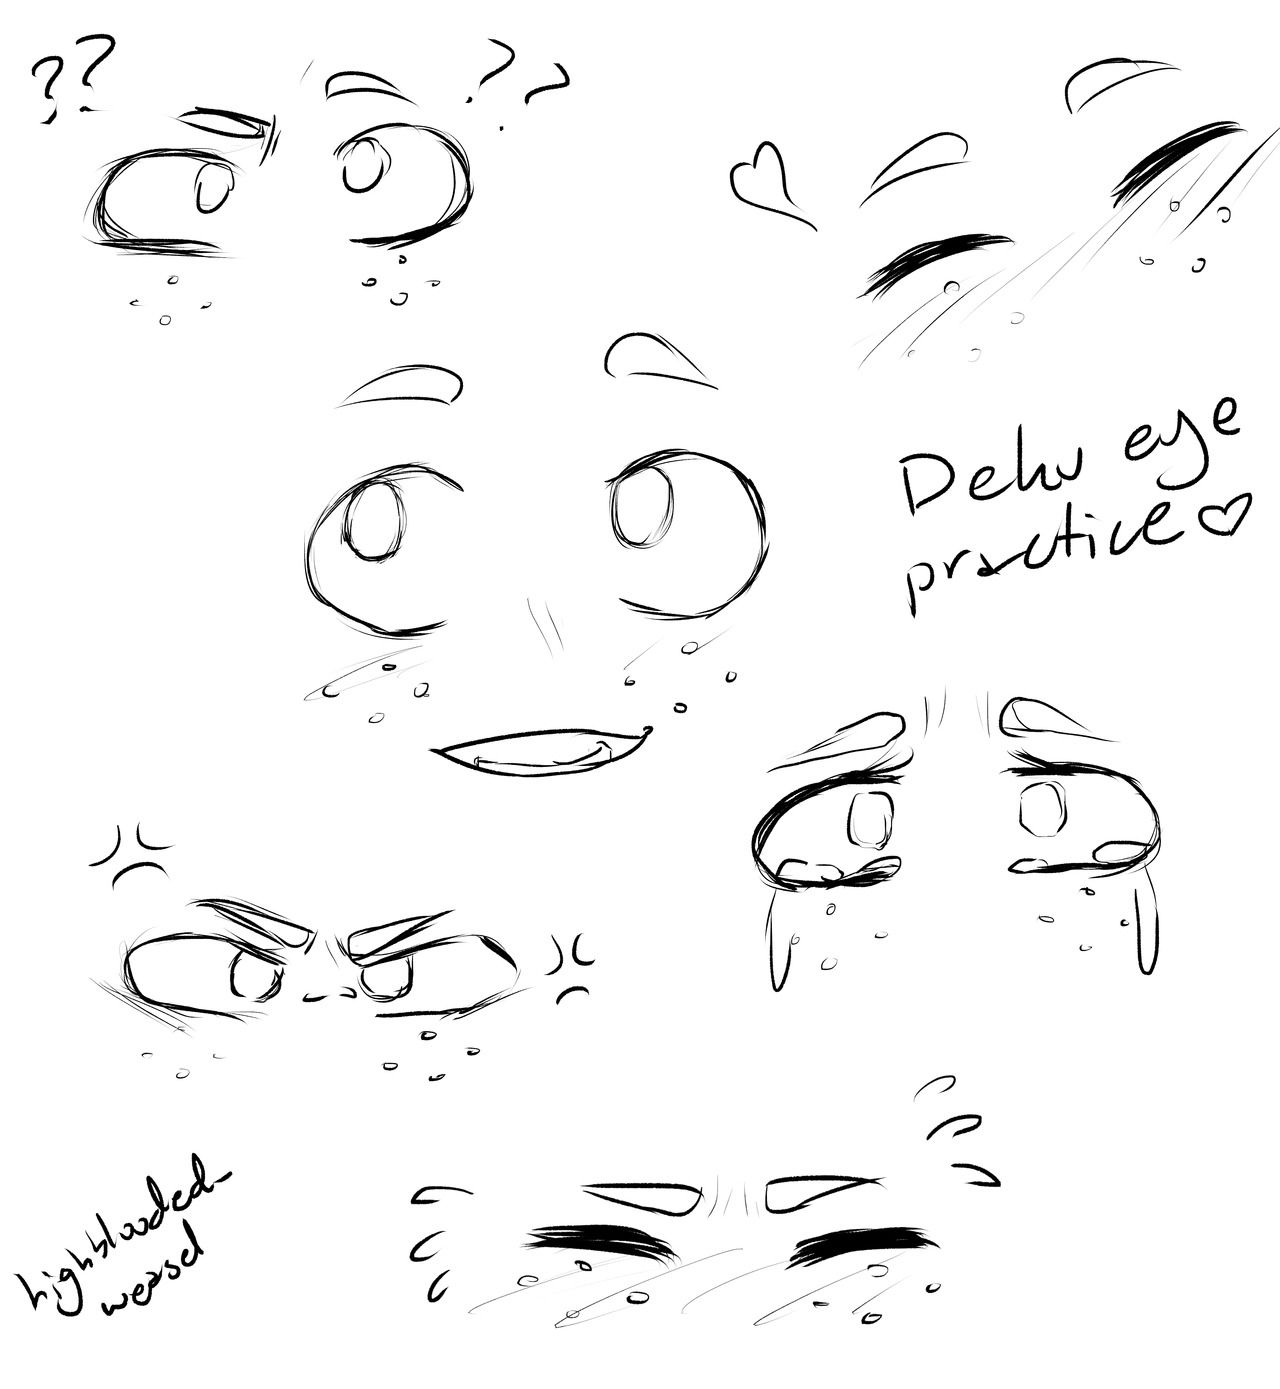 Deku Scrub I Love Drawing His Eyes So Much Oh My God Cartoon Eyes Drawing Eye Drawing Eye Drawing Tutorials